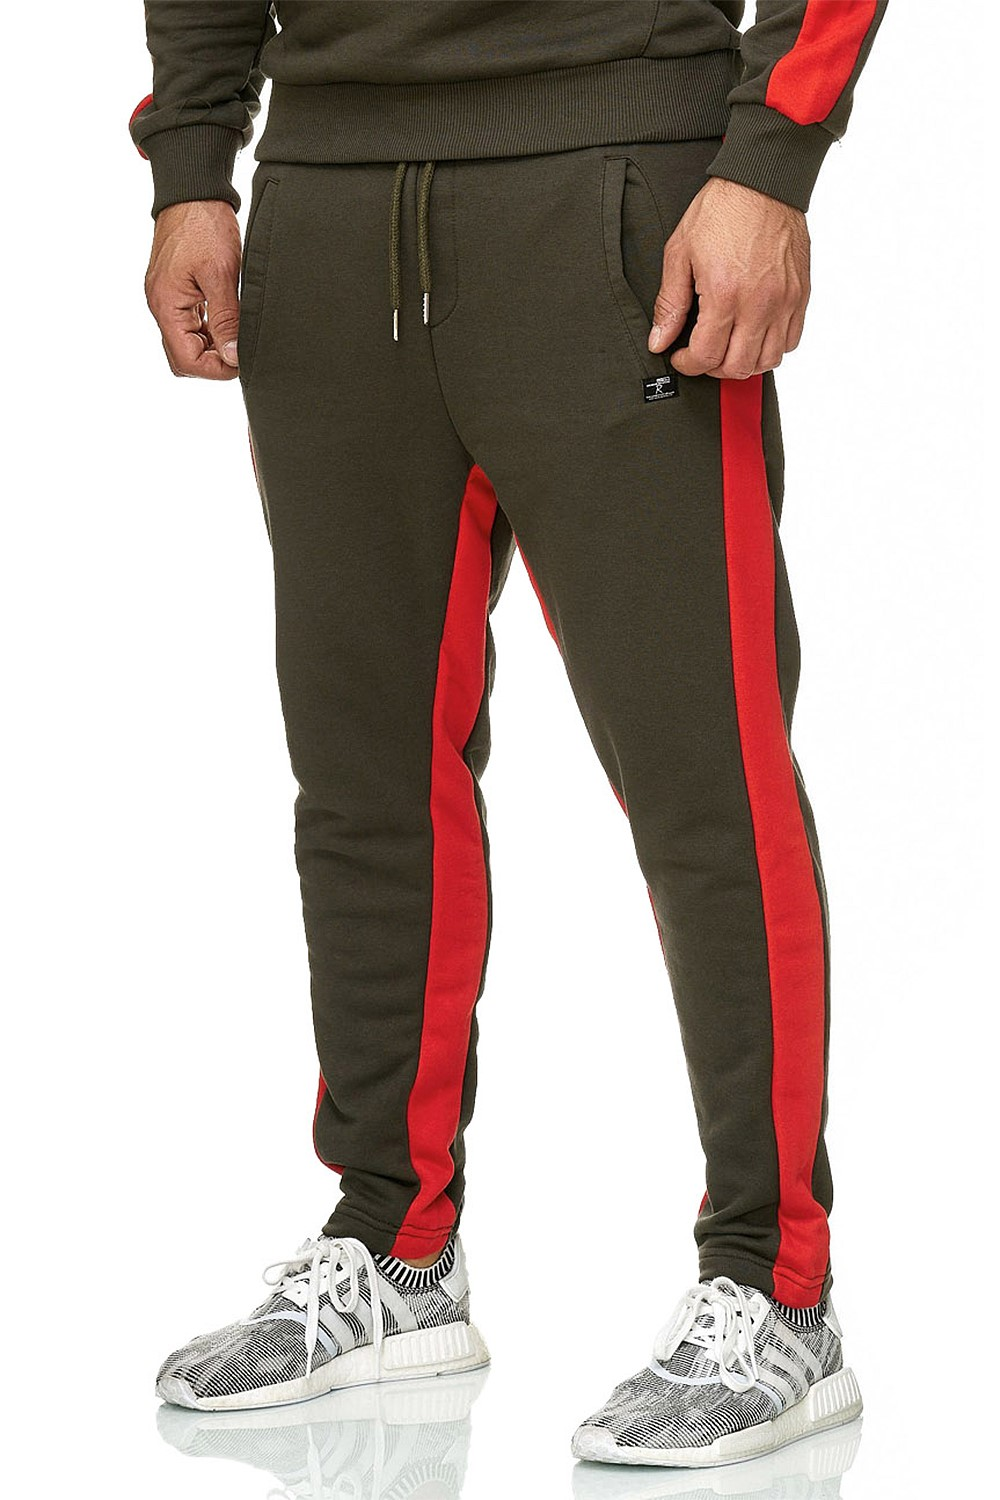 Redbridge-senores-regular-fit-chandal-fitness-sueter-aerobic-pantalones miniatura 9